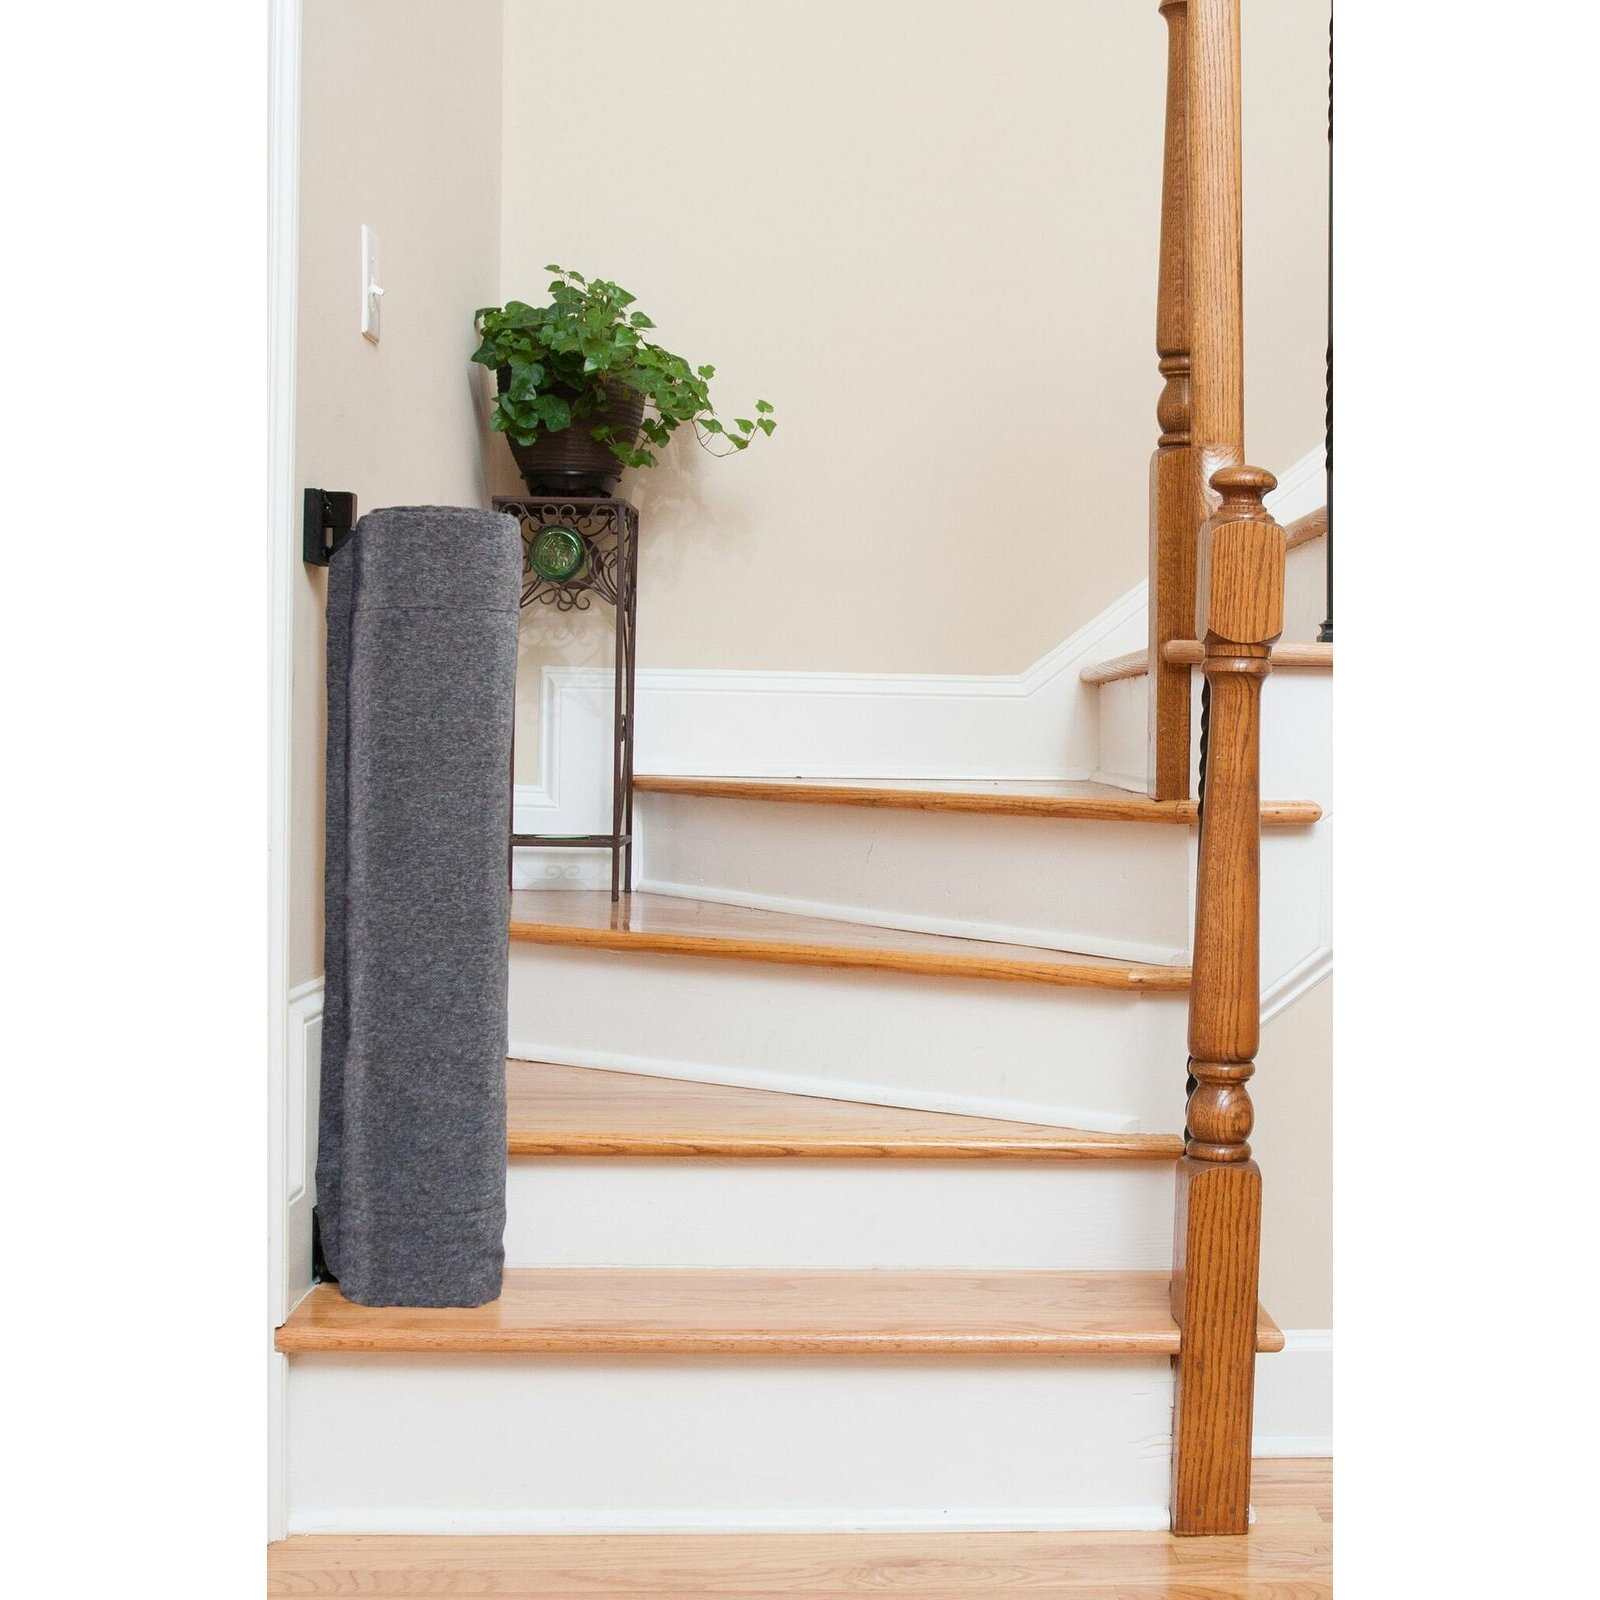 Thestairbarrier Wall To Banister Safety Gate Wayfair Ca